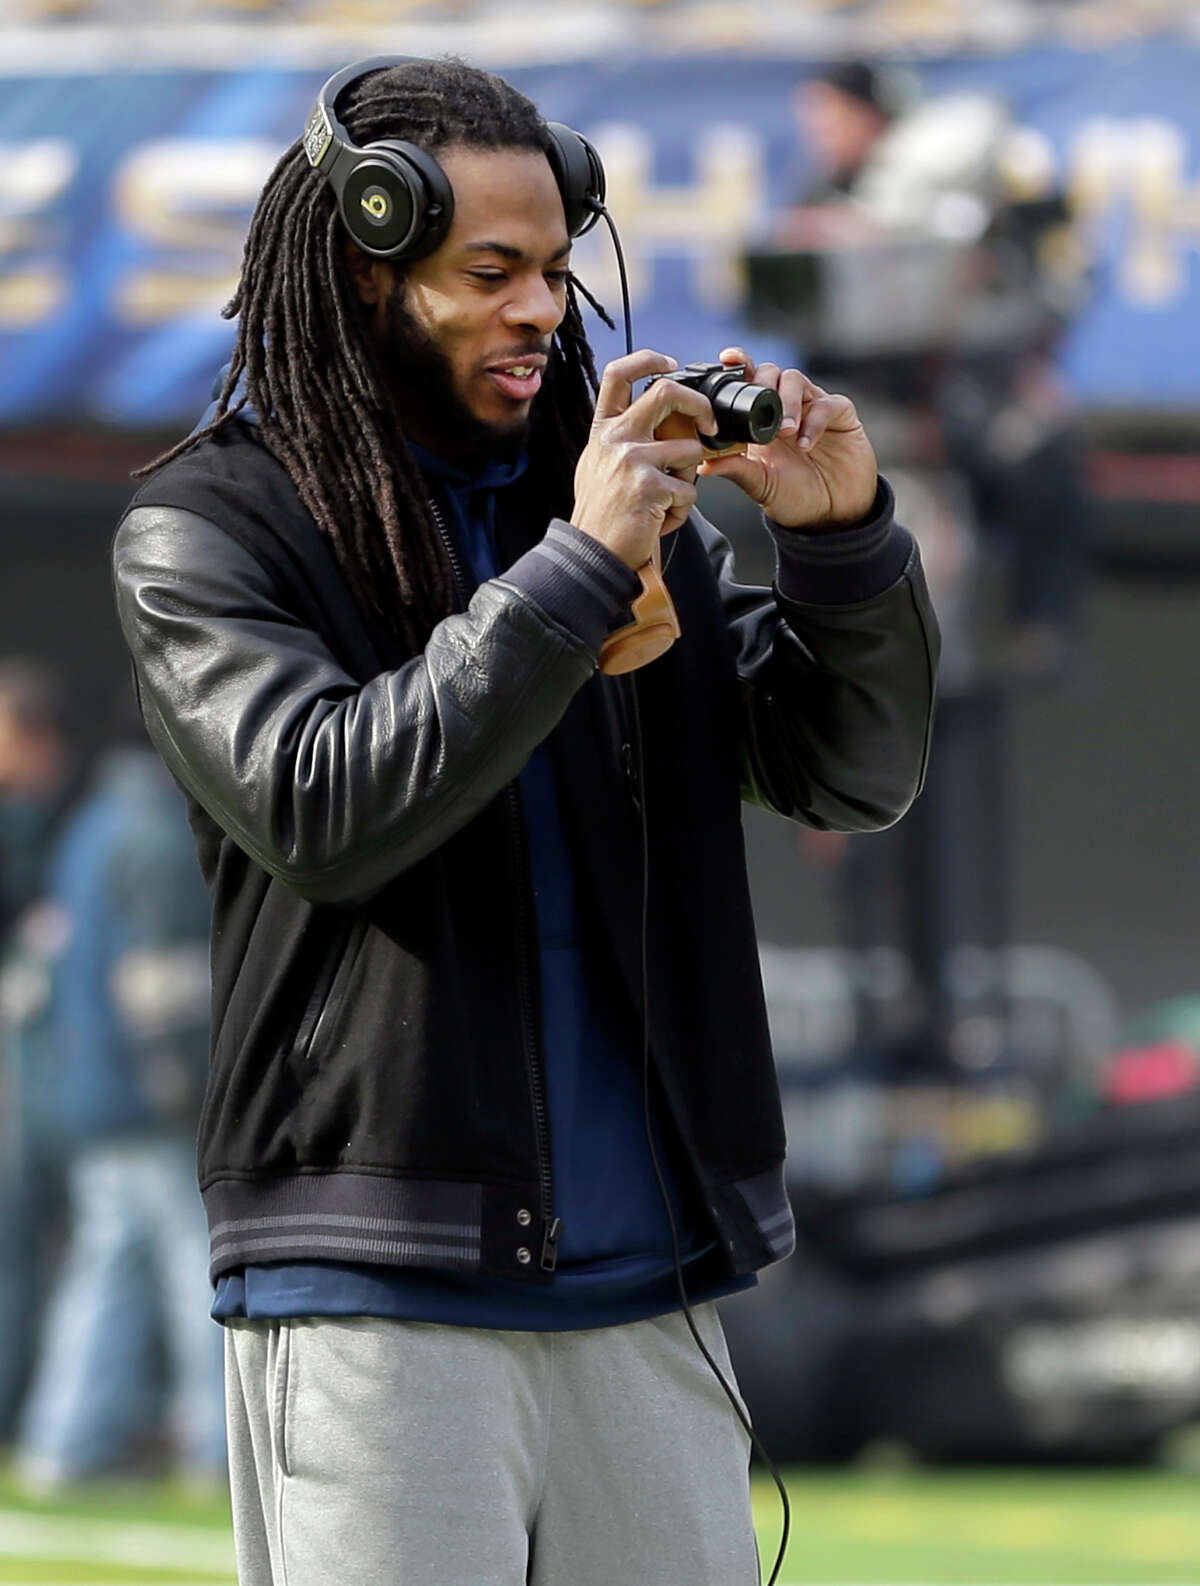 Seattle Seahawks cornerback Richard Sherman takes a photo of the field during a brief visit by the team to MetLife Stadium Saturday, Feb. 1, 2014, in East Rutherford, N.J. The Seahawks and the Denver Broncos are scheduled to play in the Super Bowl XLVIII football game Sunday, Feb. 2, 2014.